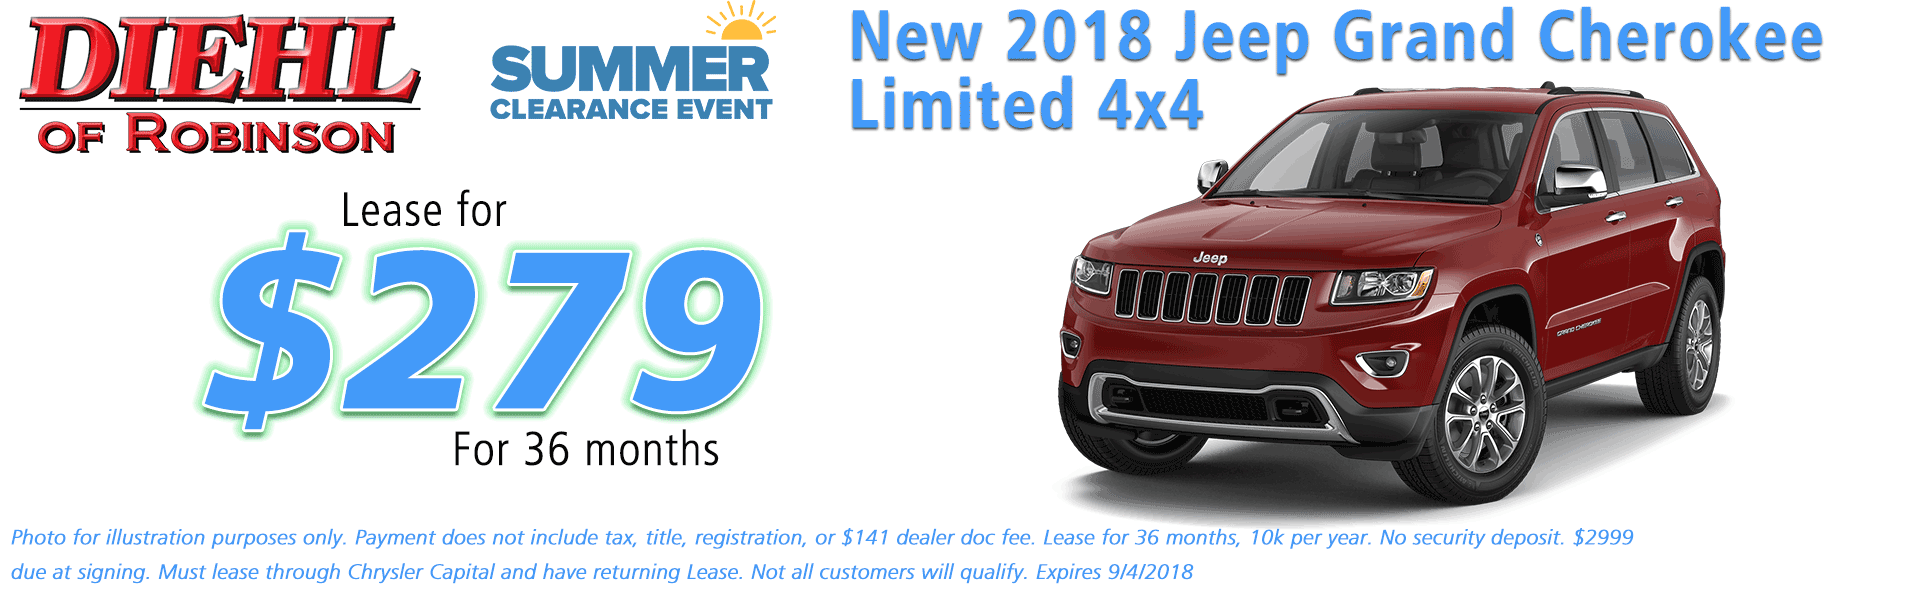 Diehl of Robinson, Robinson Twp, PA Chrysler Jeep Dodge Ram sales service parts and accessories NEW 2018 JEEP GRAND CHEROKEE LIMITED 4X4